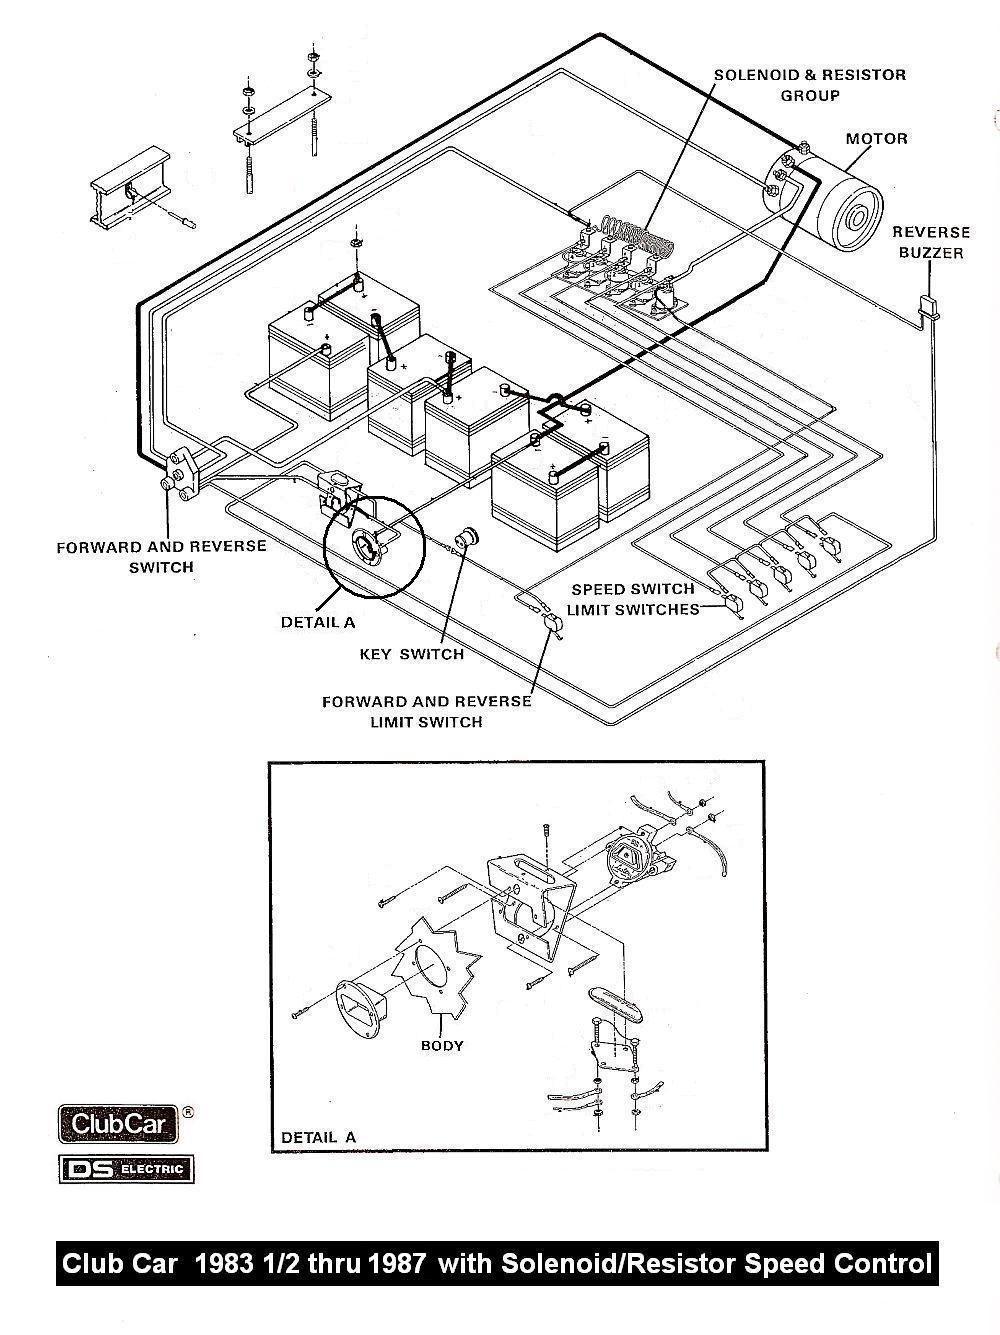 0e8d045370be7682b159825224221faa vintagegolfcartparts com *freezer & crock pot* pinterest wiring diagram for club car electric golf cart at readyjetset.co